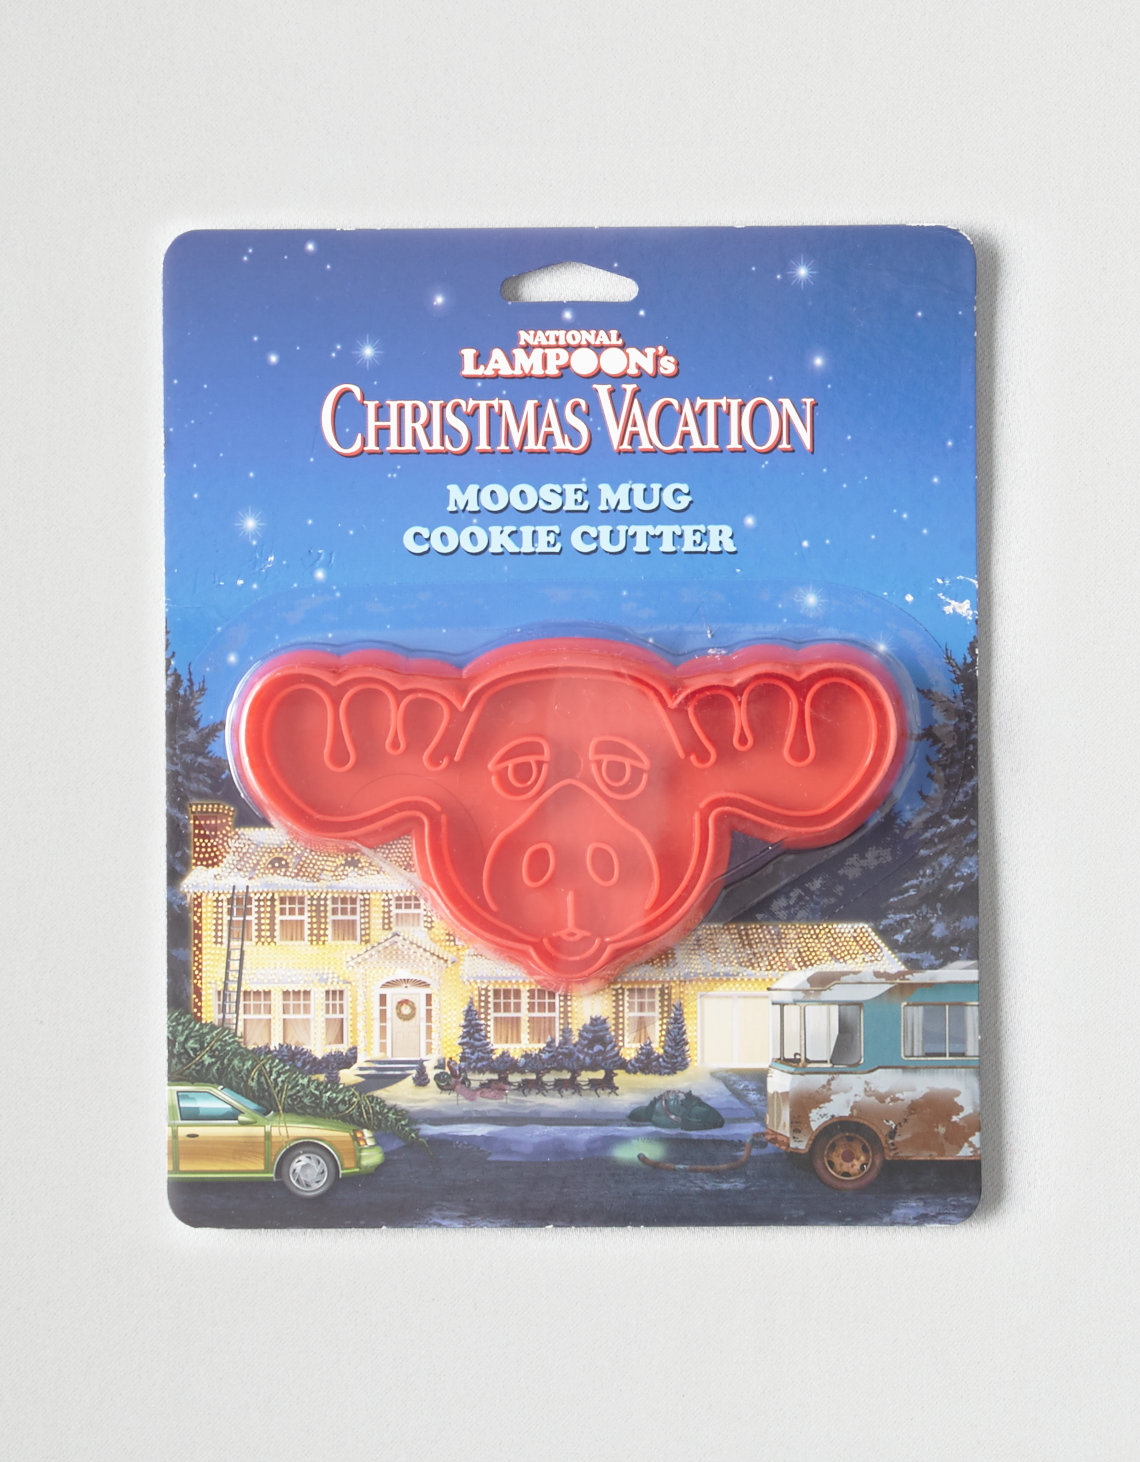 icup christmas vacation moose mug cookie cutter placeholder image product image - Christmas Vacation Moose Glasses